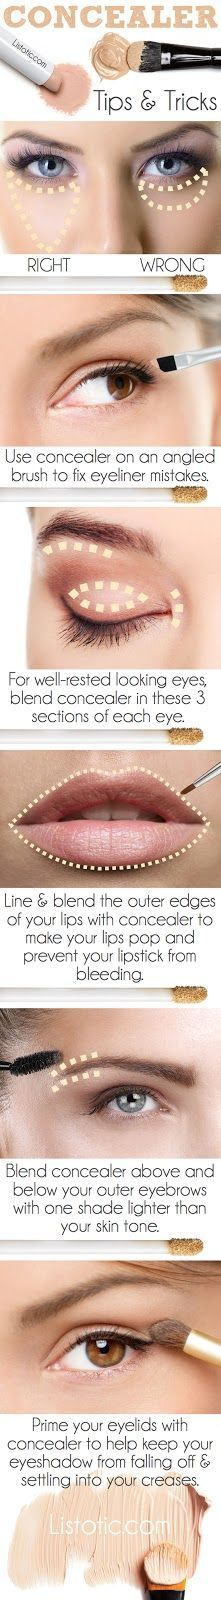 Top Beauty Mistakes You Didn't Know You Were Making - USA Fashion Trends